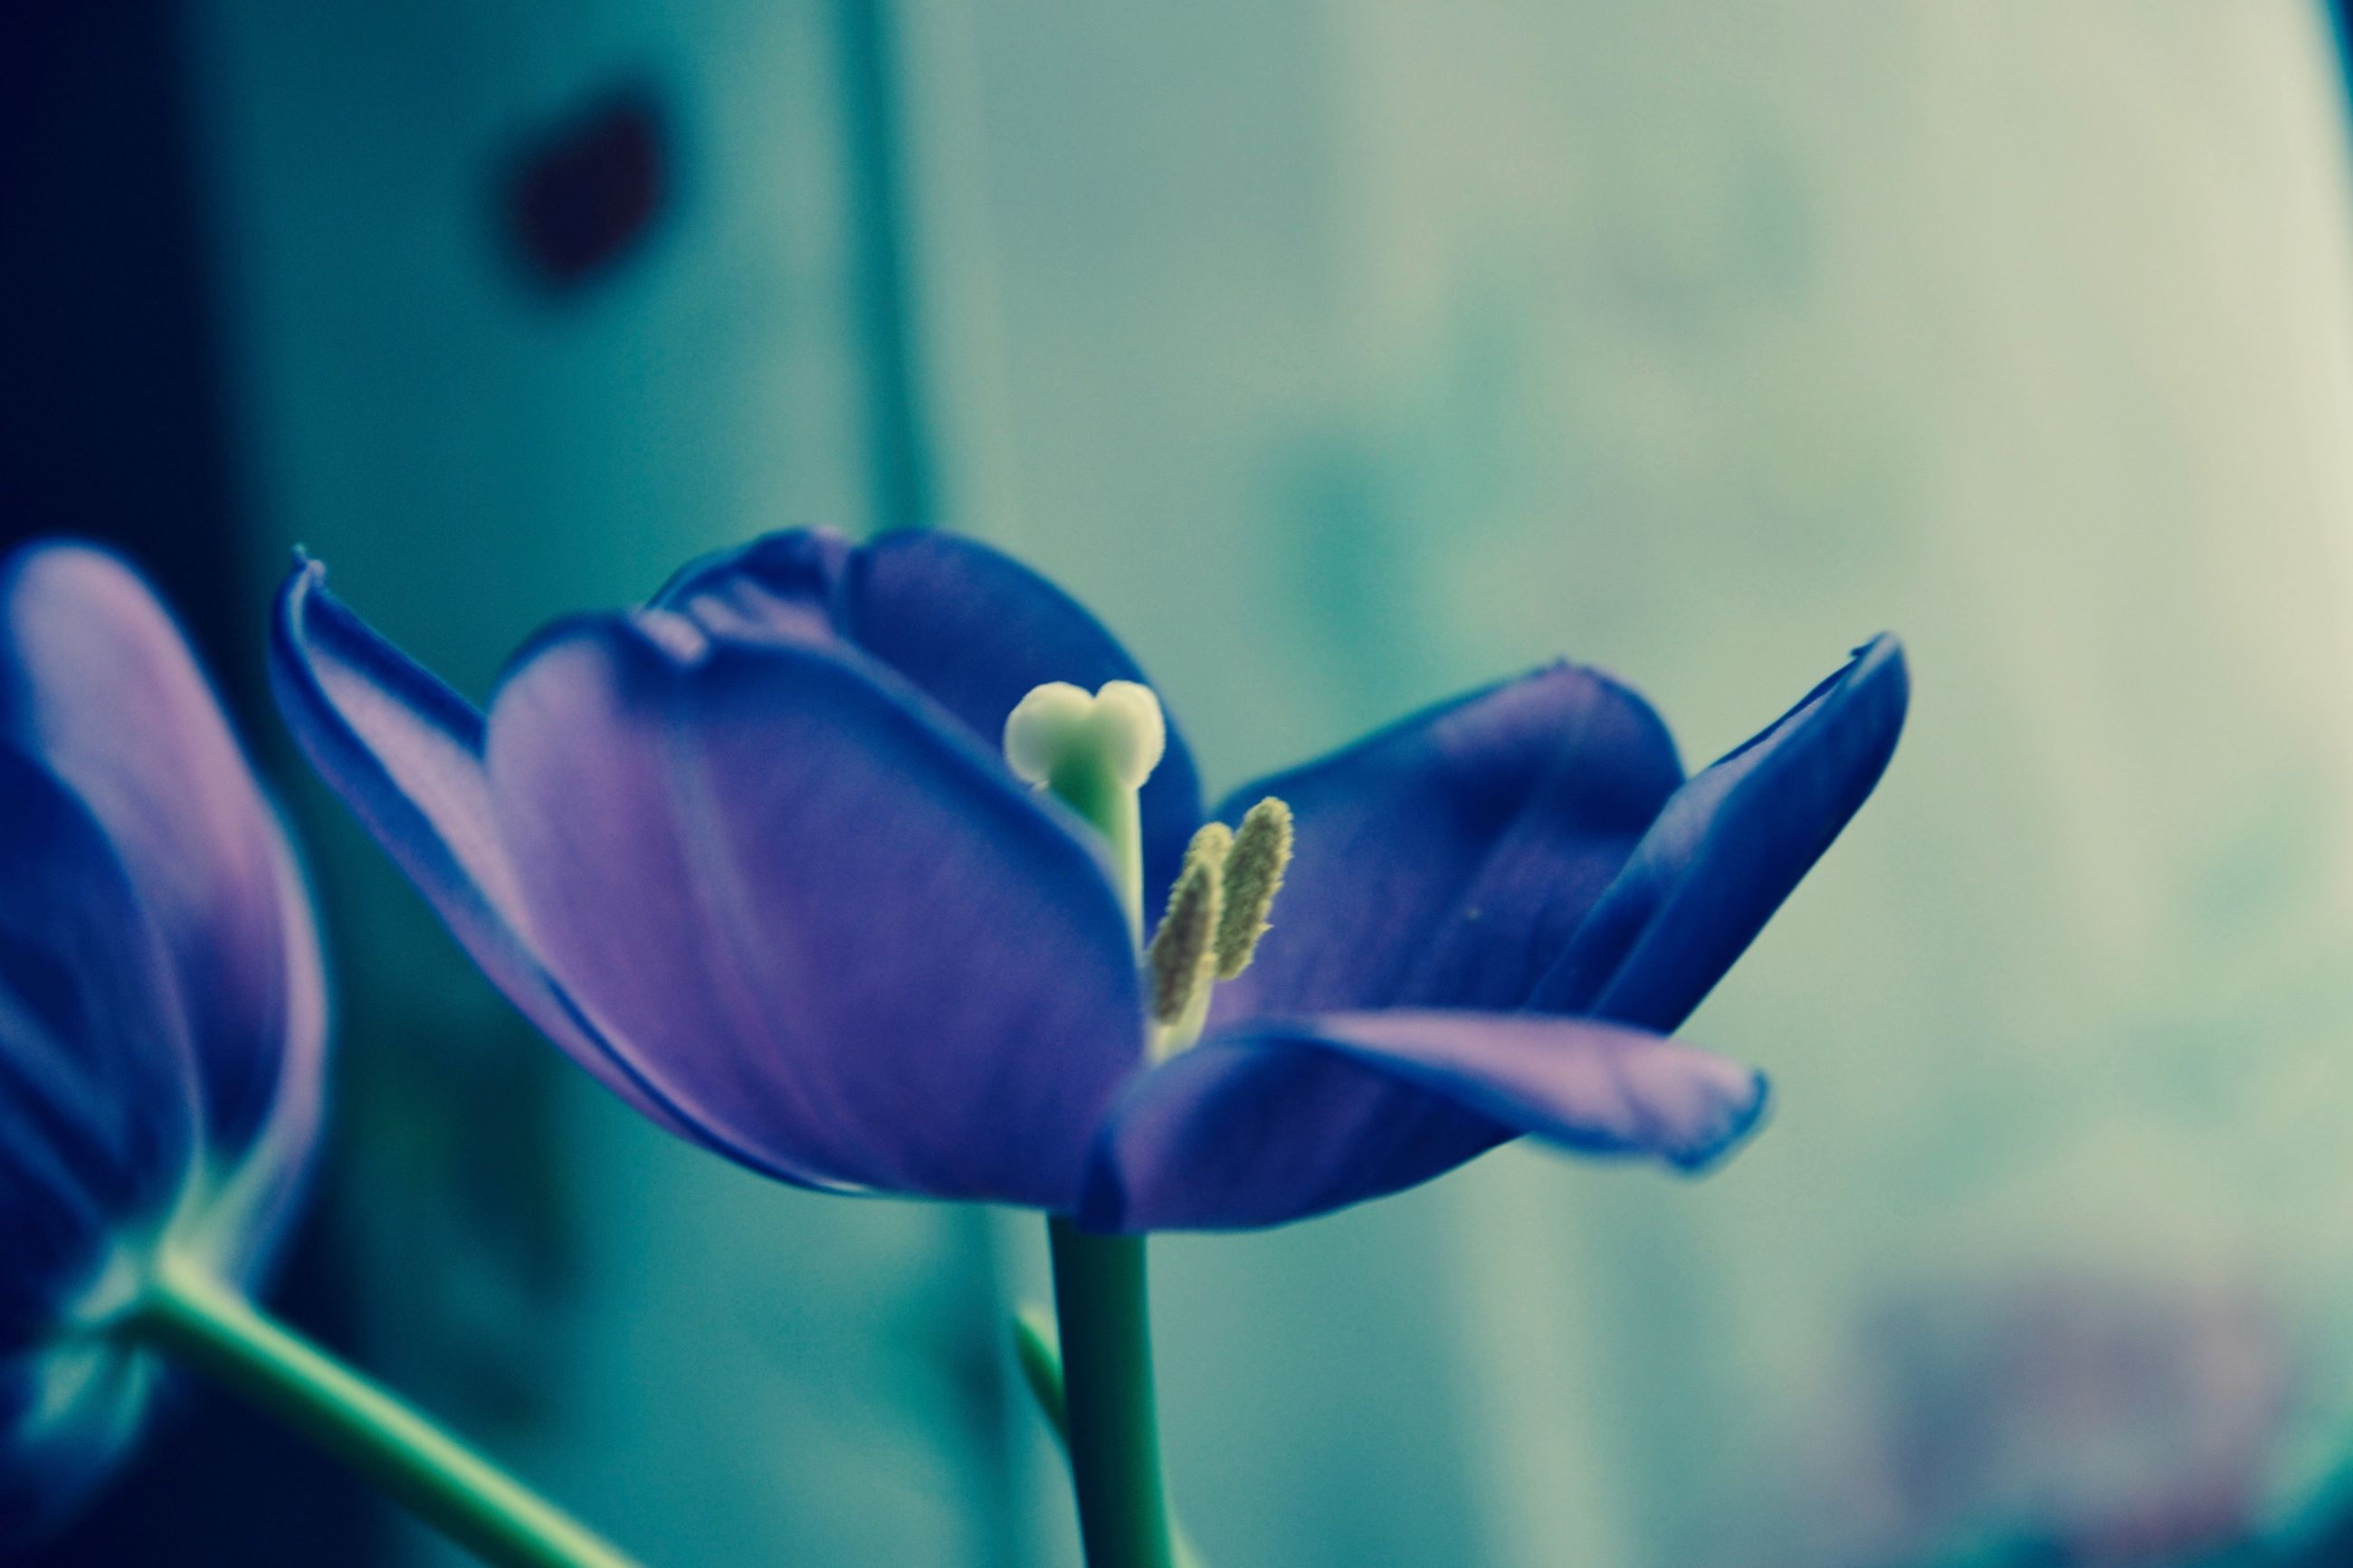 flower, fragility, freshness, nature, beauty in nature, plant, growth, flower head, petal, close-up, no people, day, indoors